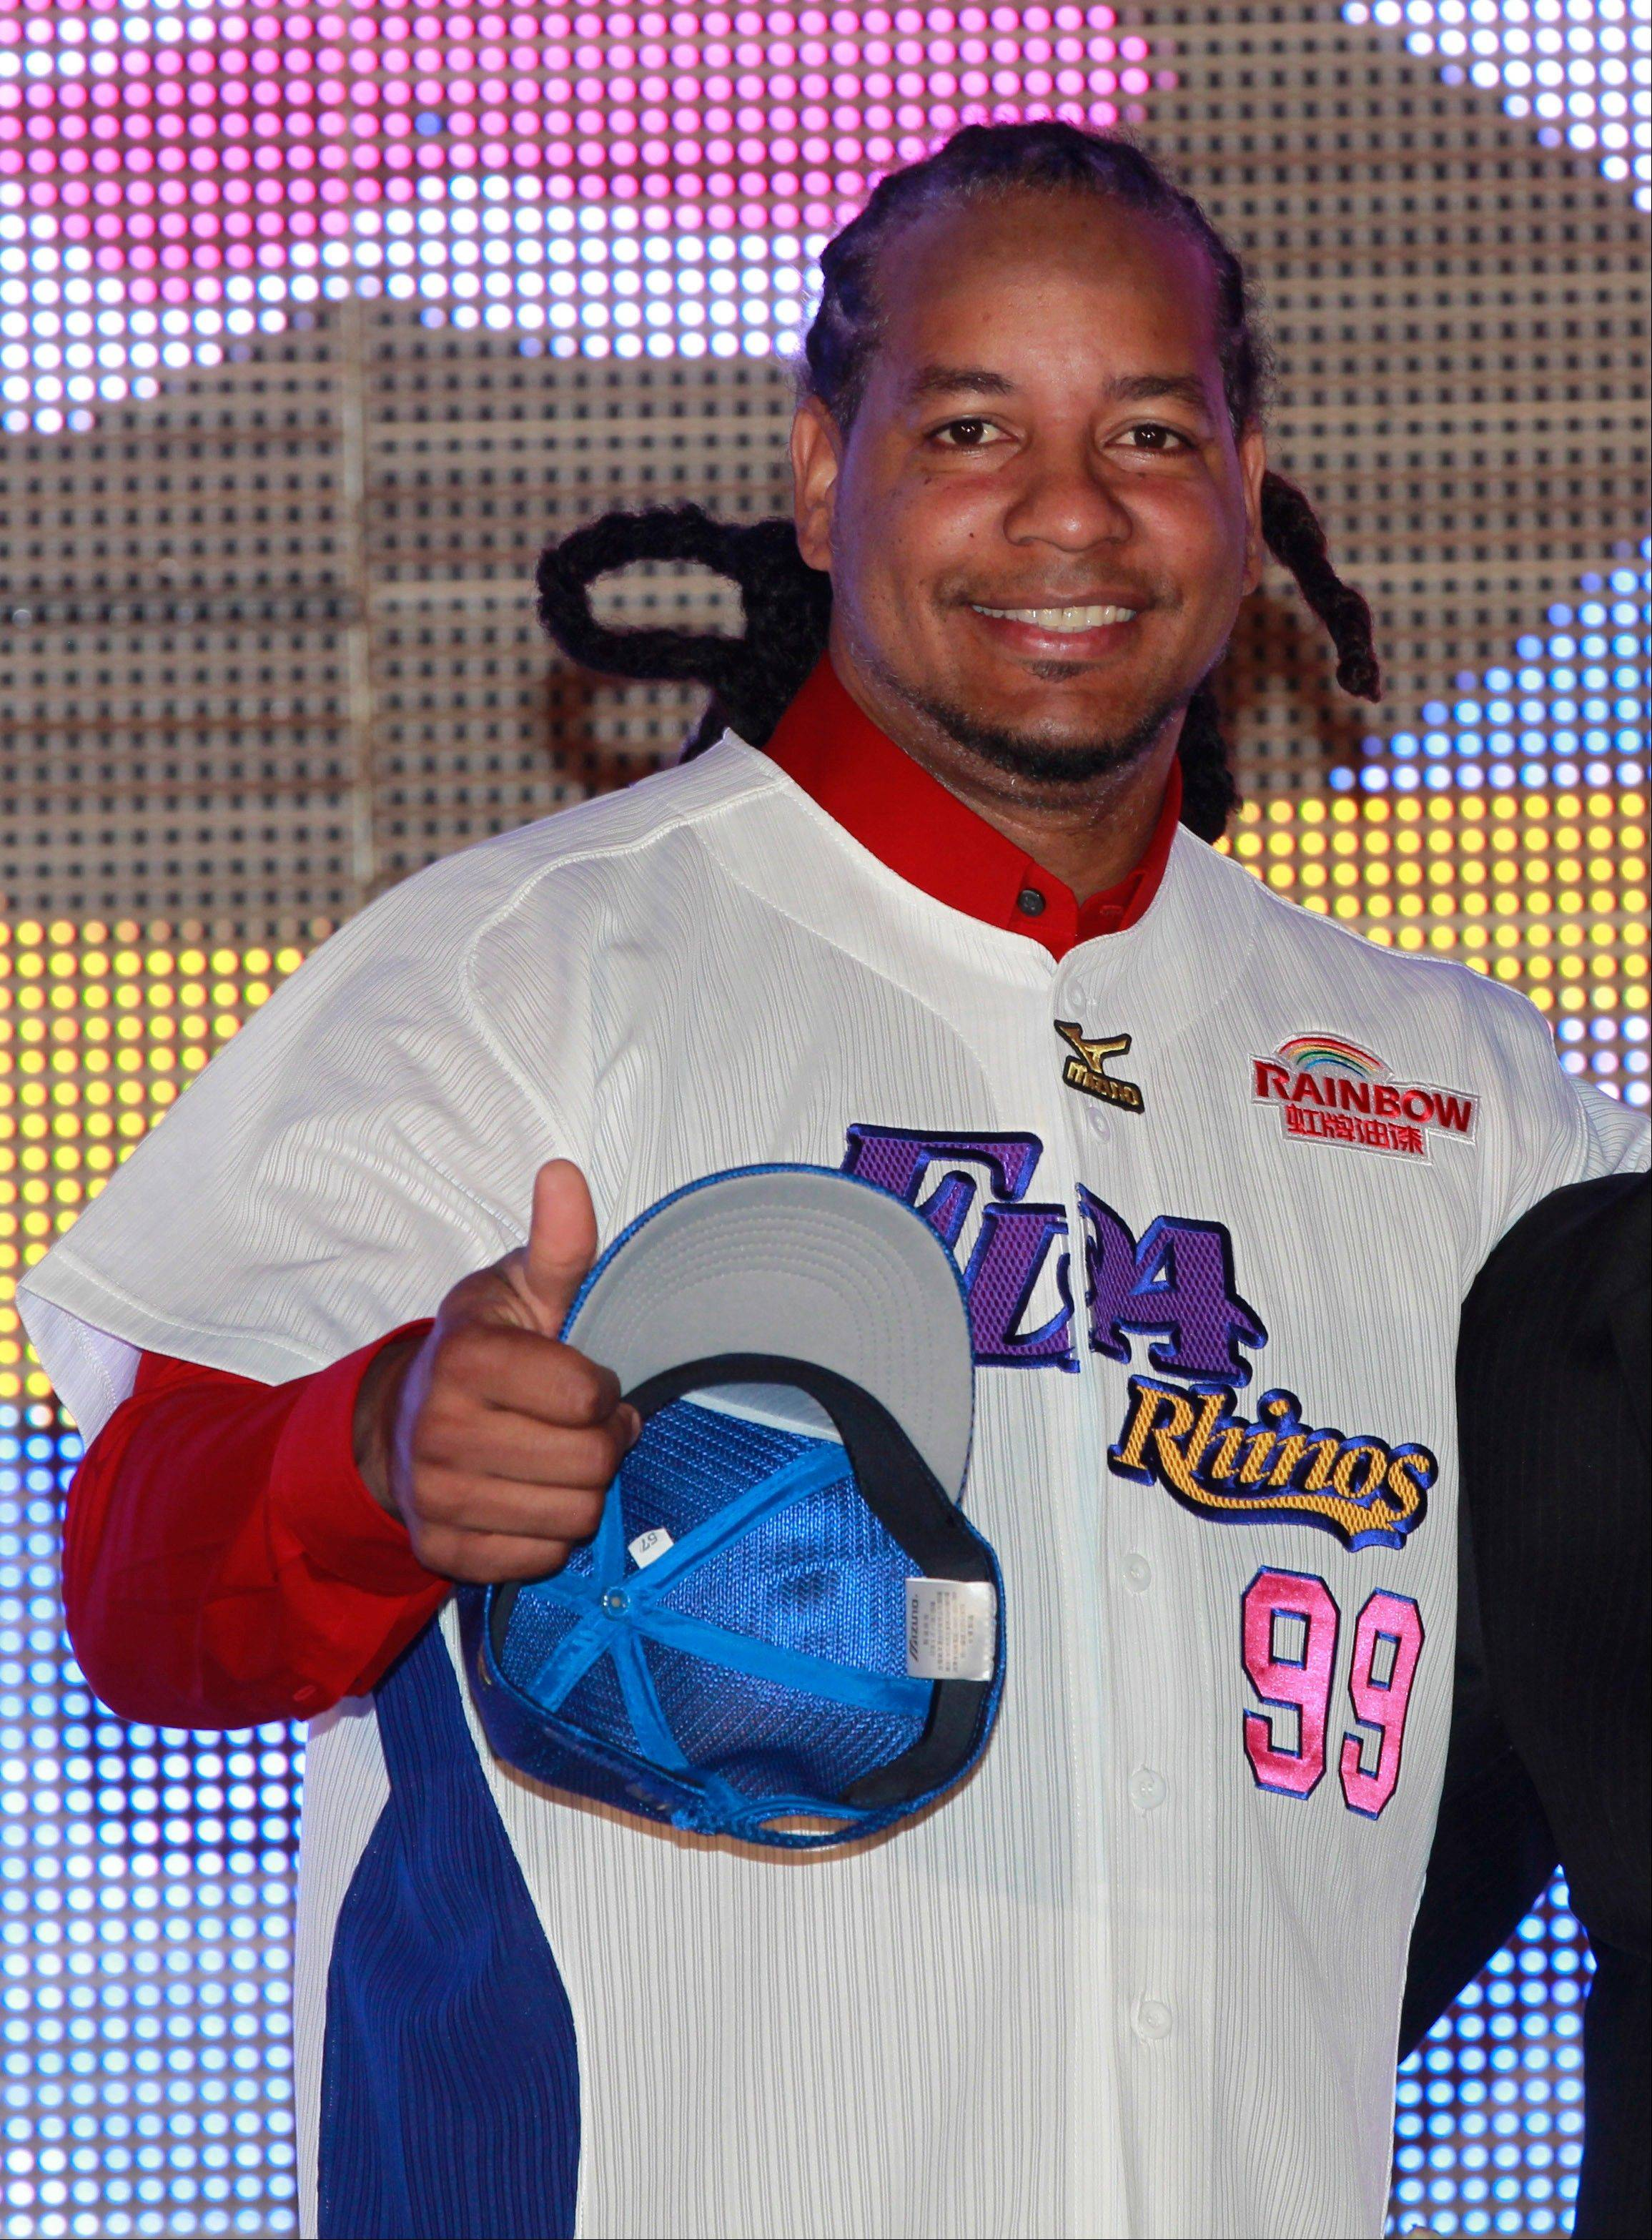 Manny Ramirez poses in his new jersey after signing a short-term contract to play on the EDA Rhinos in Taiwan�s professional baseball league this spring. Ramirez was released from his minor league contract Tuesday by the Texas Rangers.